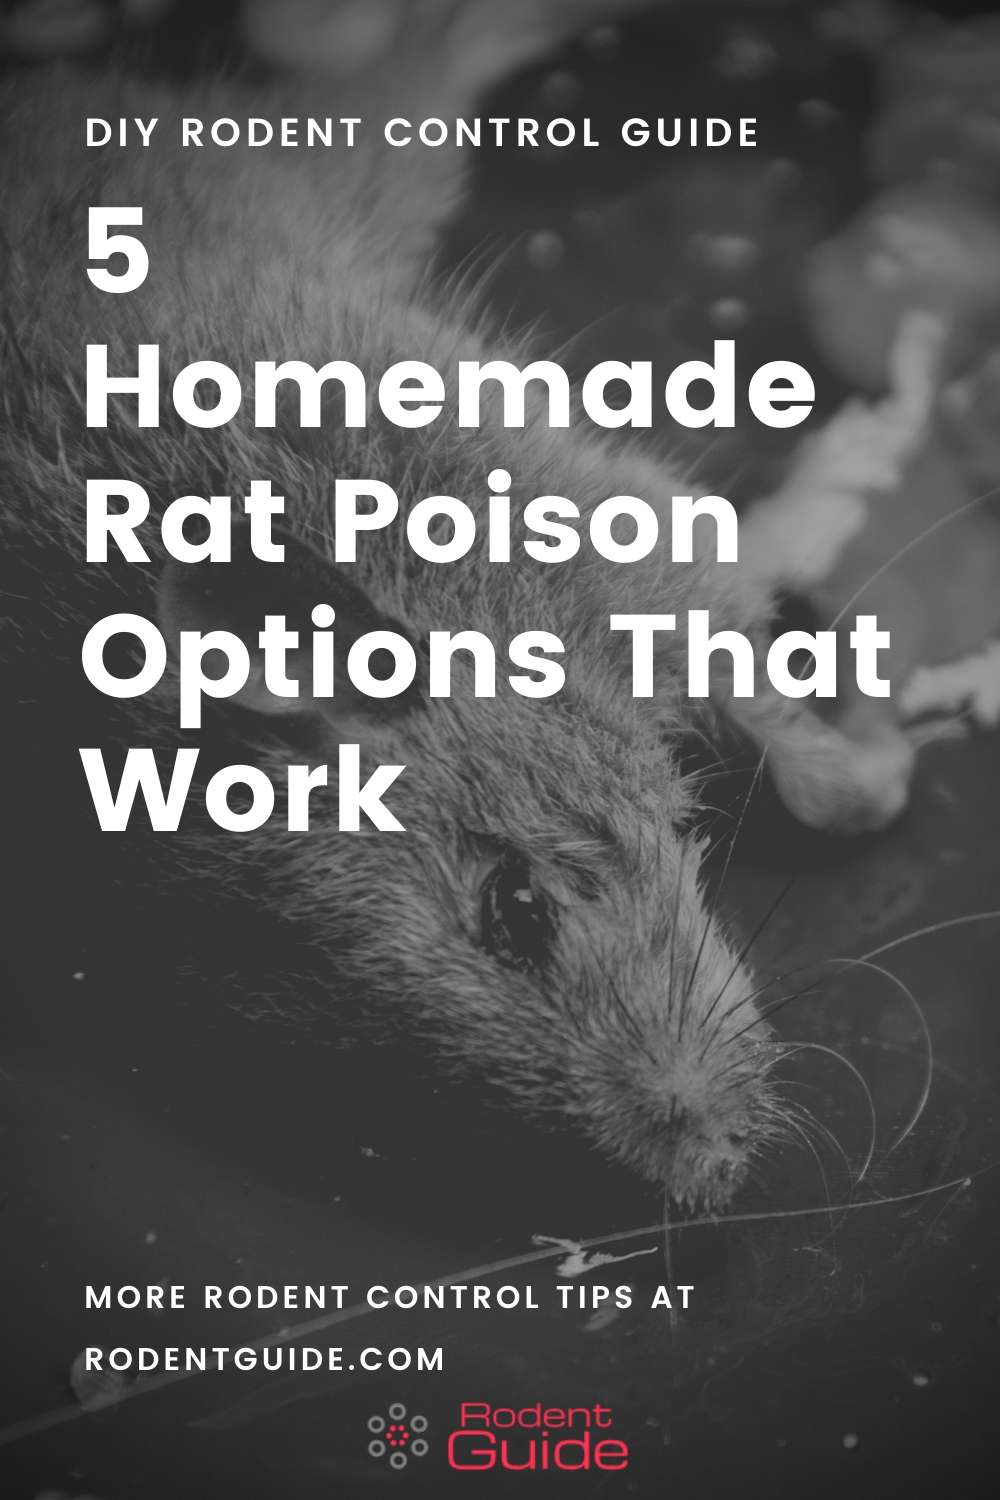 5 Homemade Rat Poison Options That Work